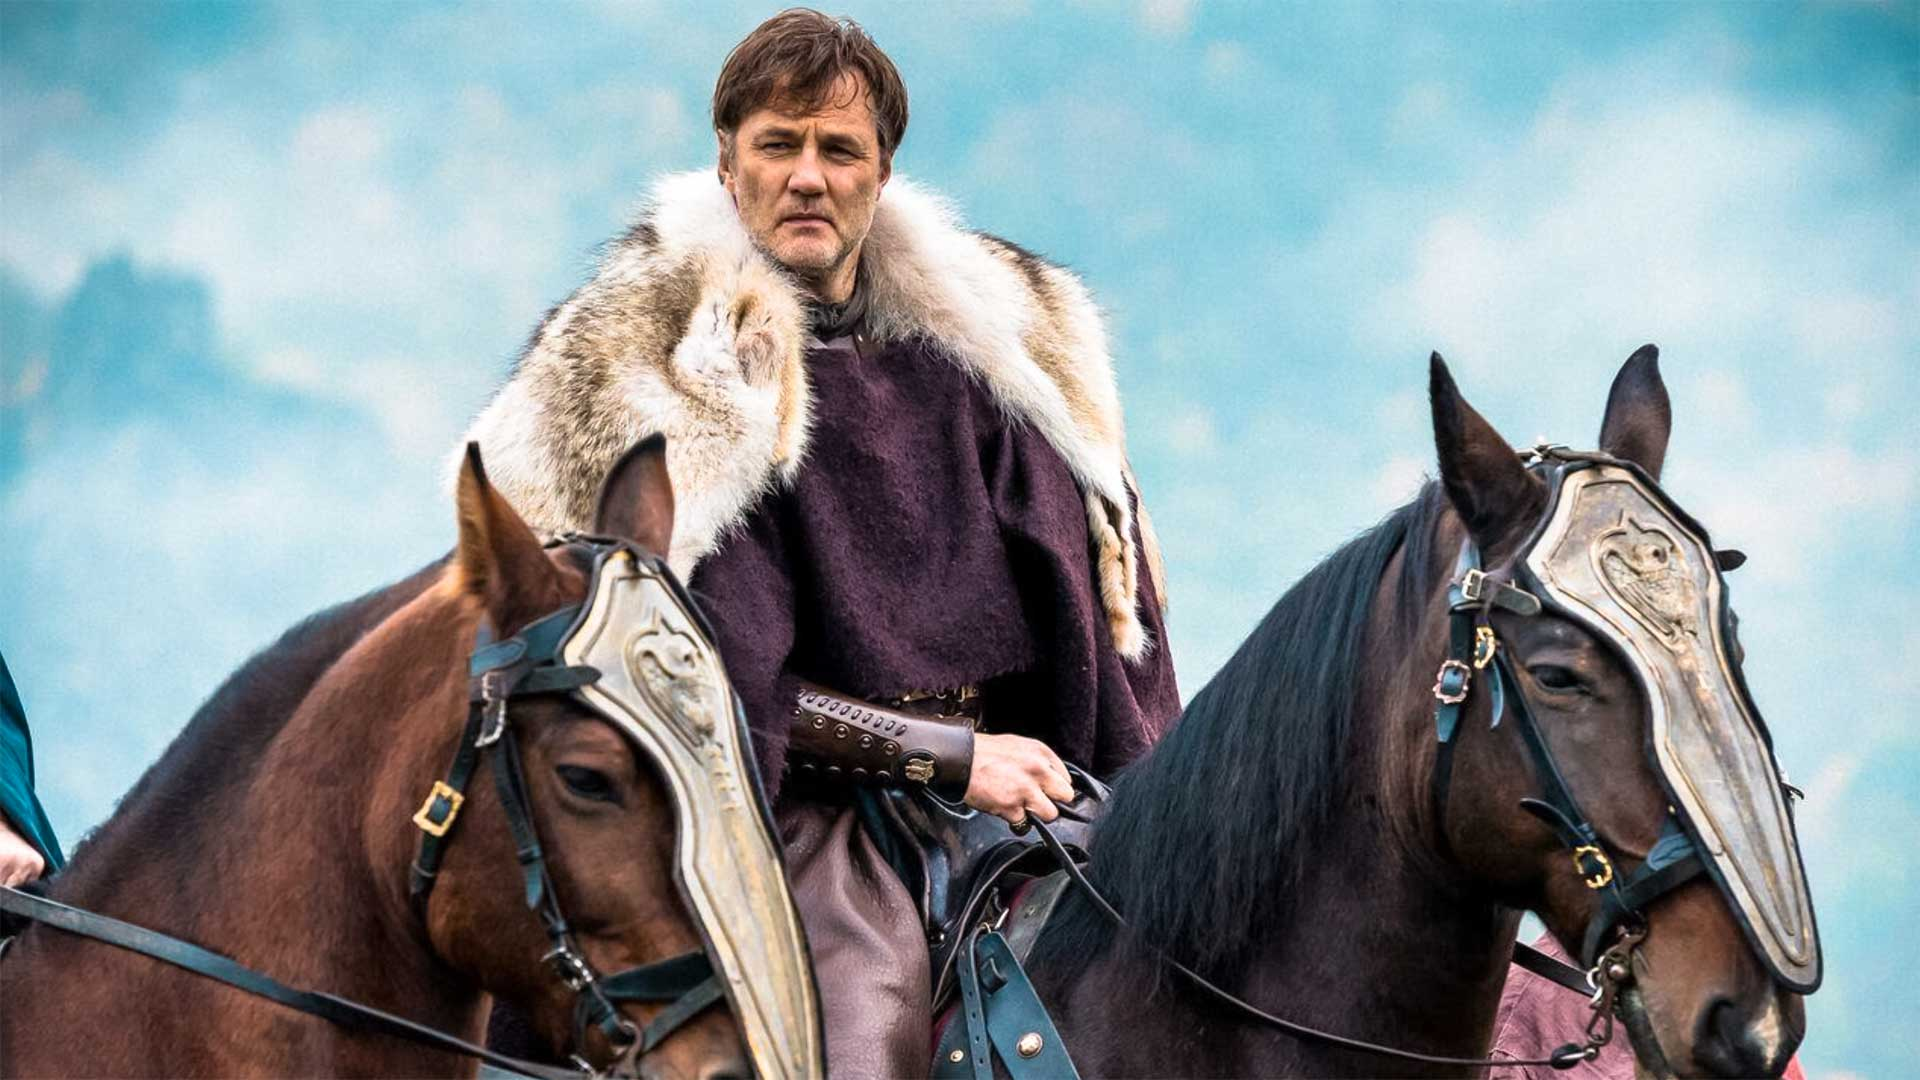 David Morrissey in 'Britannia' (Photo: Sky)